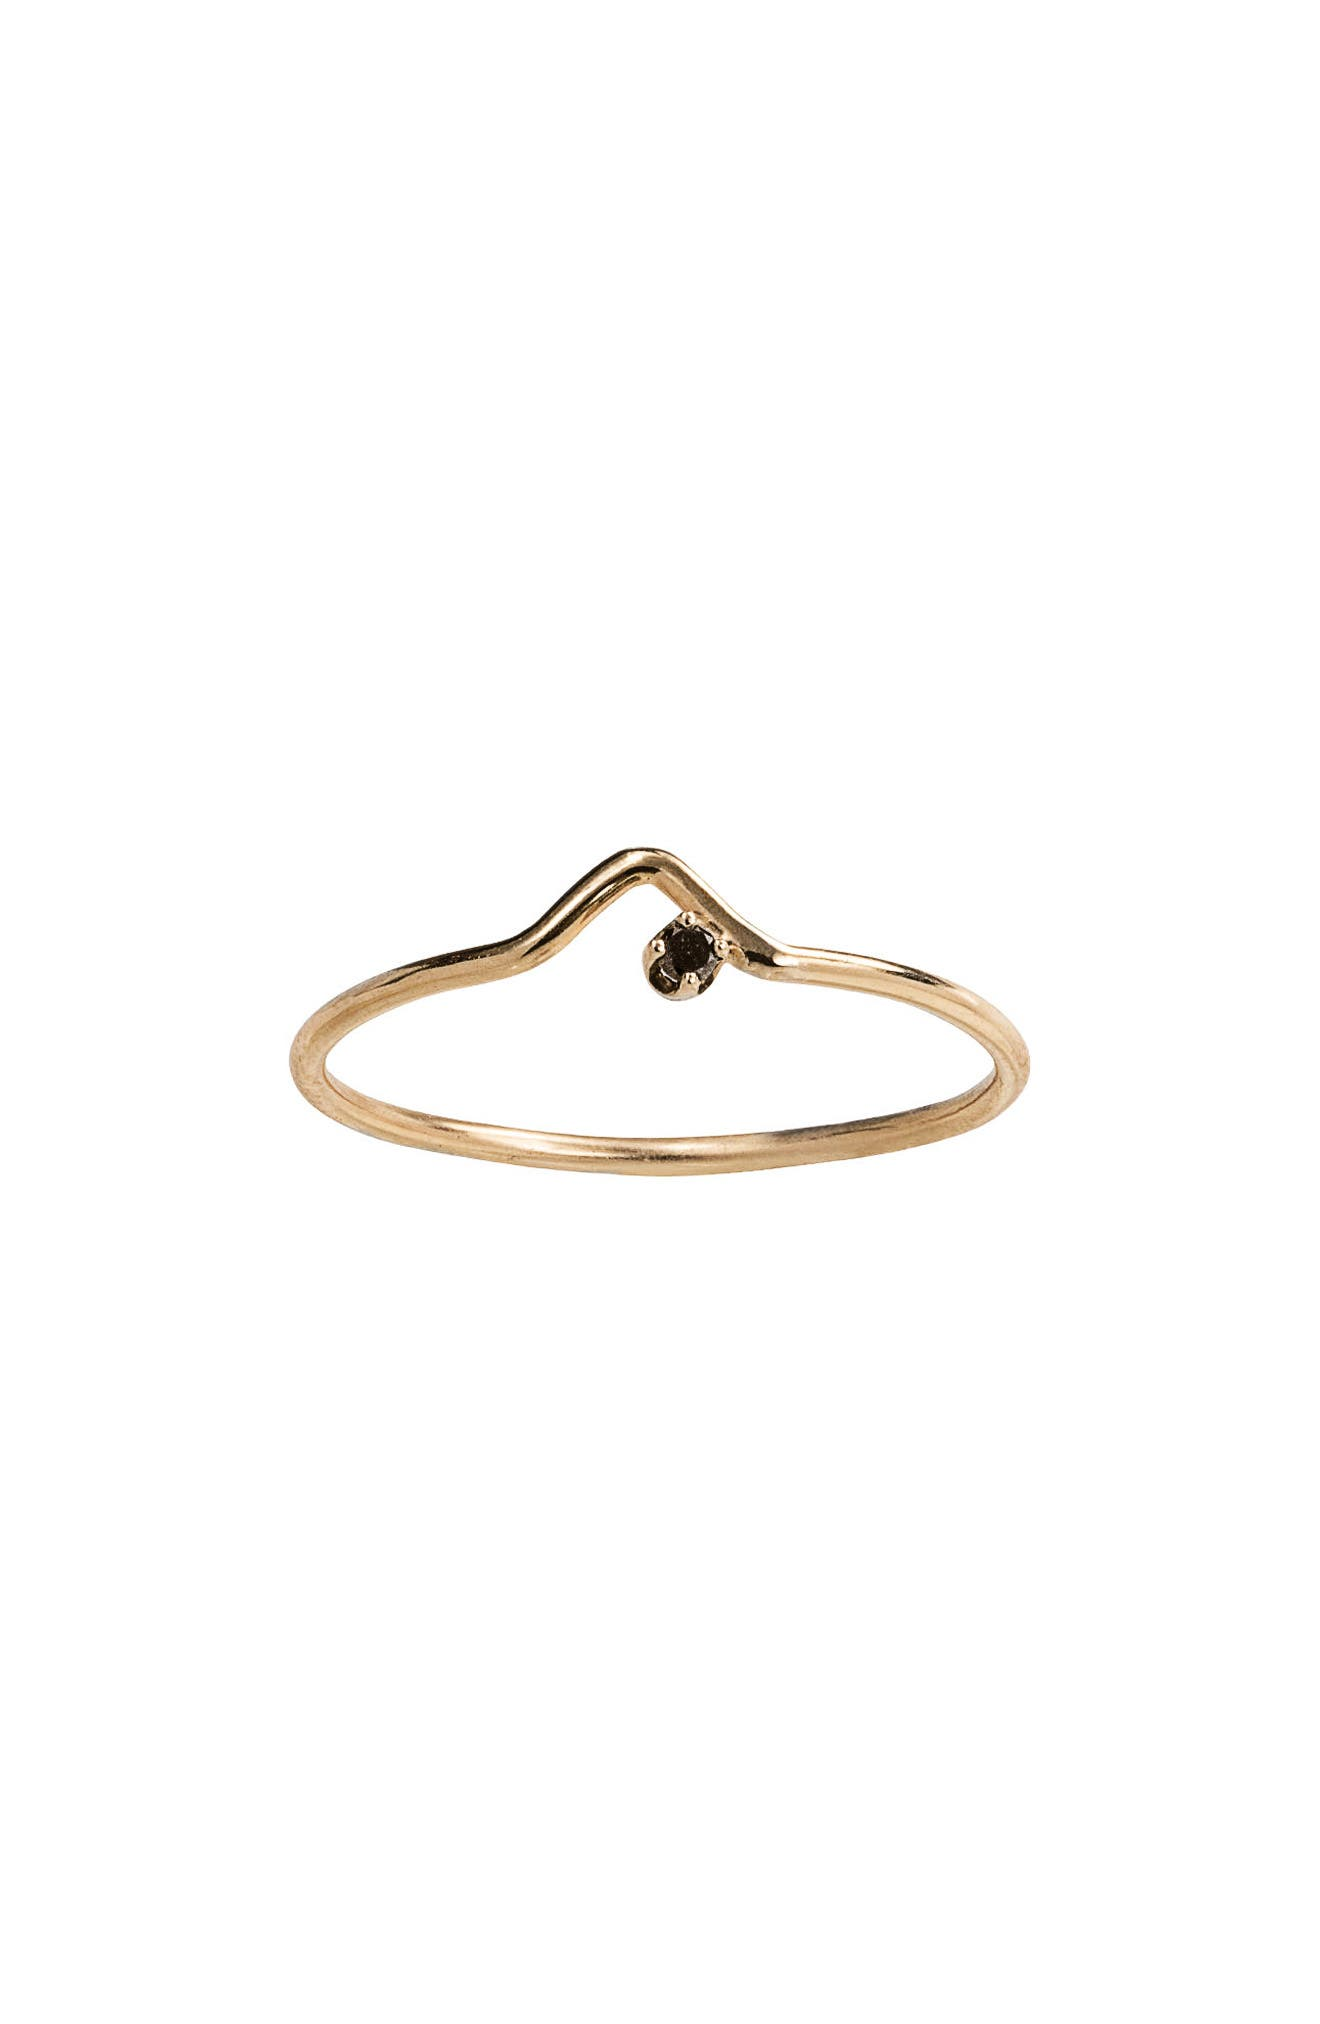 Triangle Lineage Black Diamond Ring,                             Main thumbnail 1, color,                             Yellow Gold